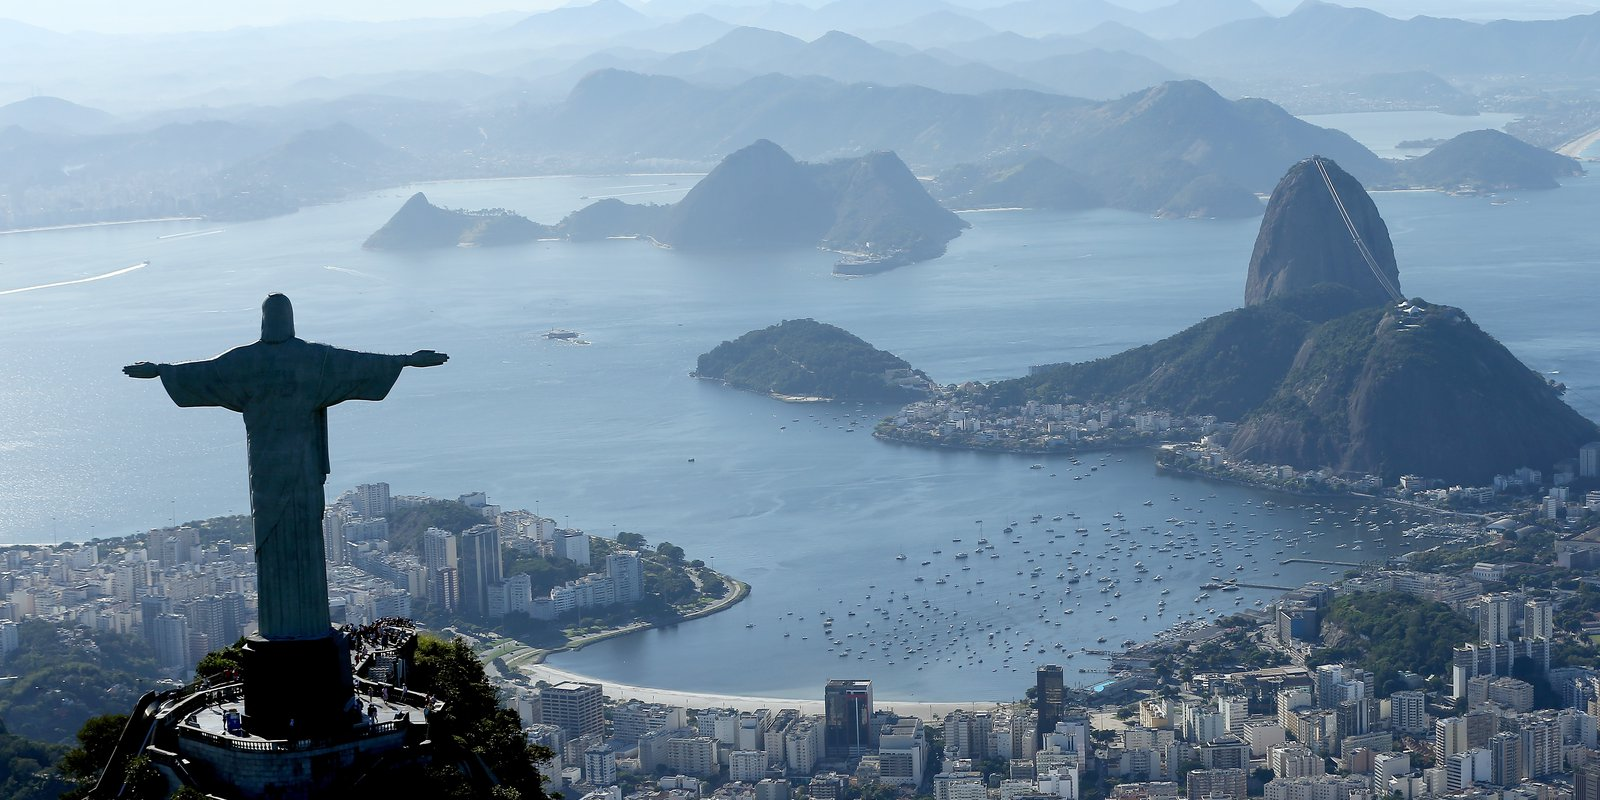 RiodeJaneiro, Brazil- July 21: Aerial view of Christ the Redeemer, Flamengo Beach, the Sugar Loaf and Guanabara Bay with nearly one year to go to the Rio 2016 Olympic Games on July 21, 2015 in Rio de Janeiro, Brazil. (Photo by Matthew Stockman/Getty Images)